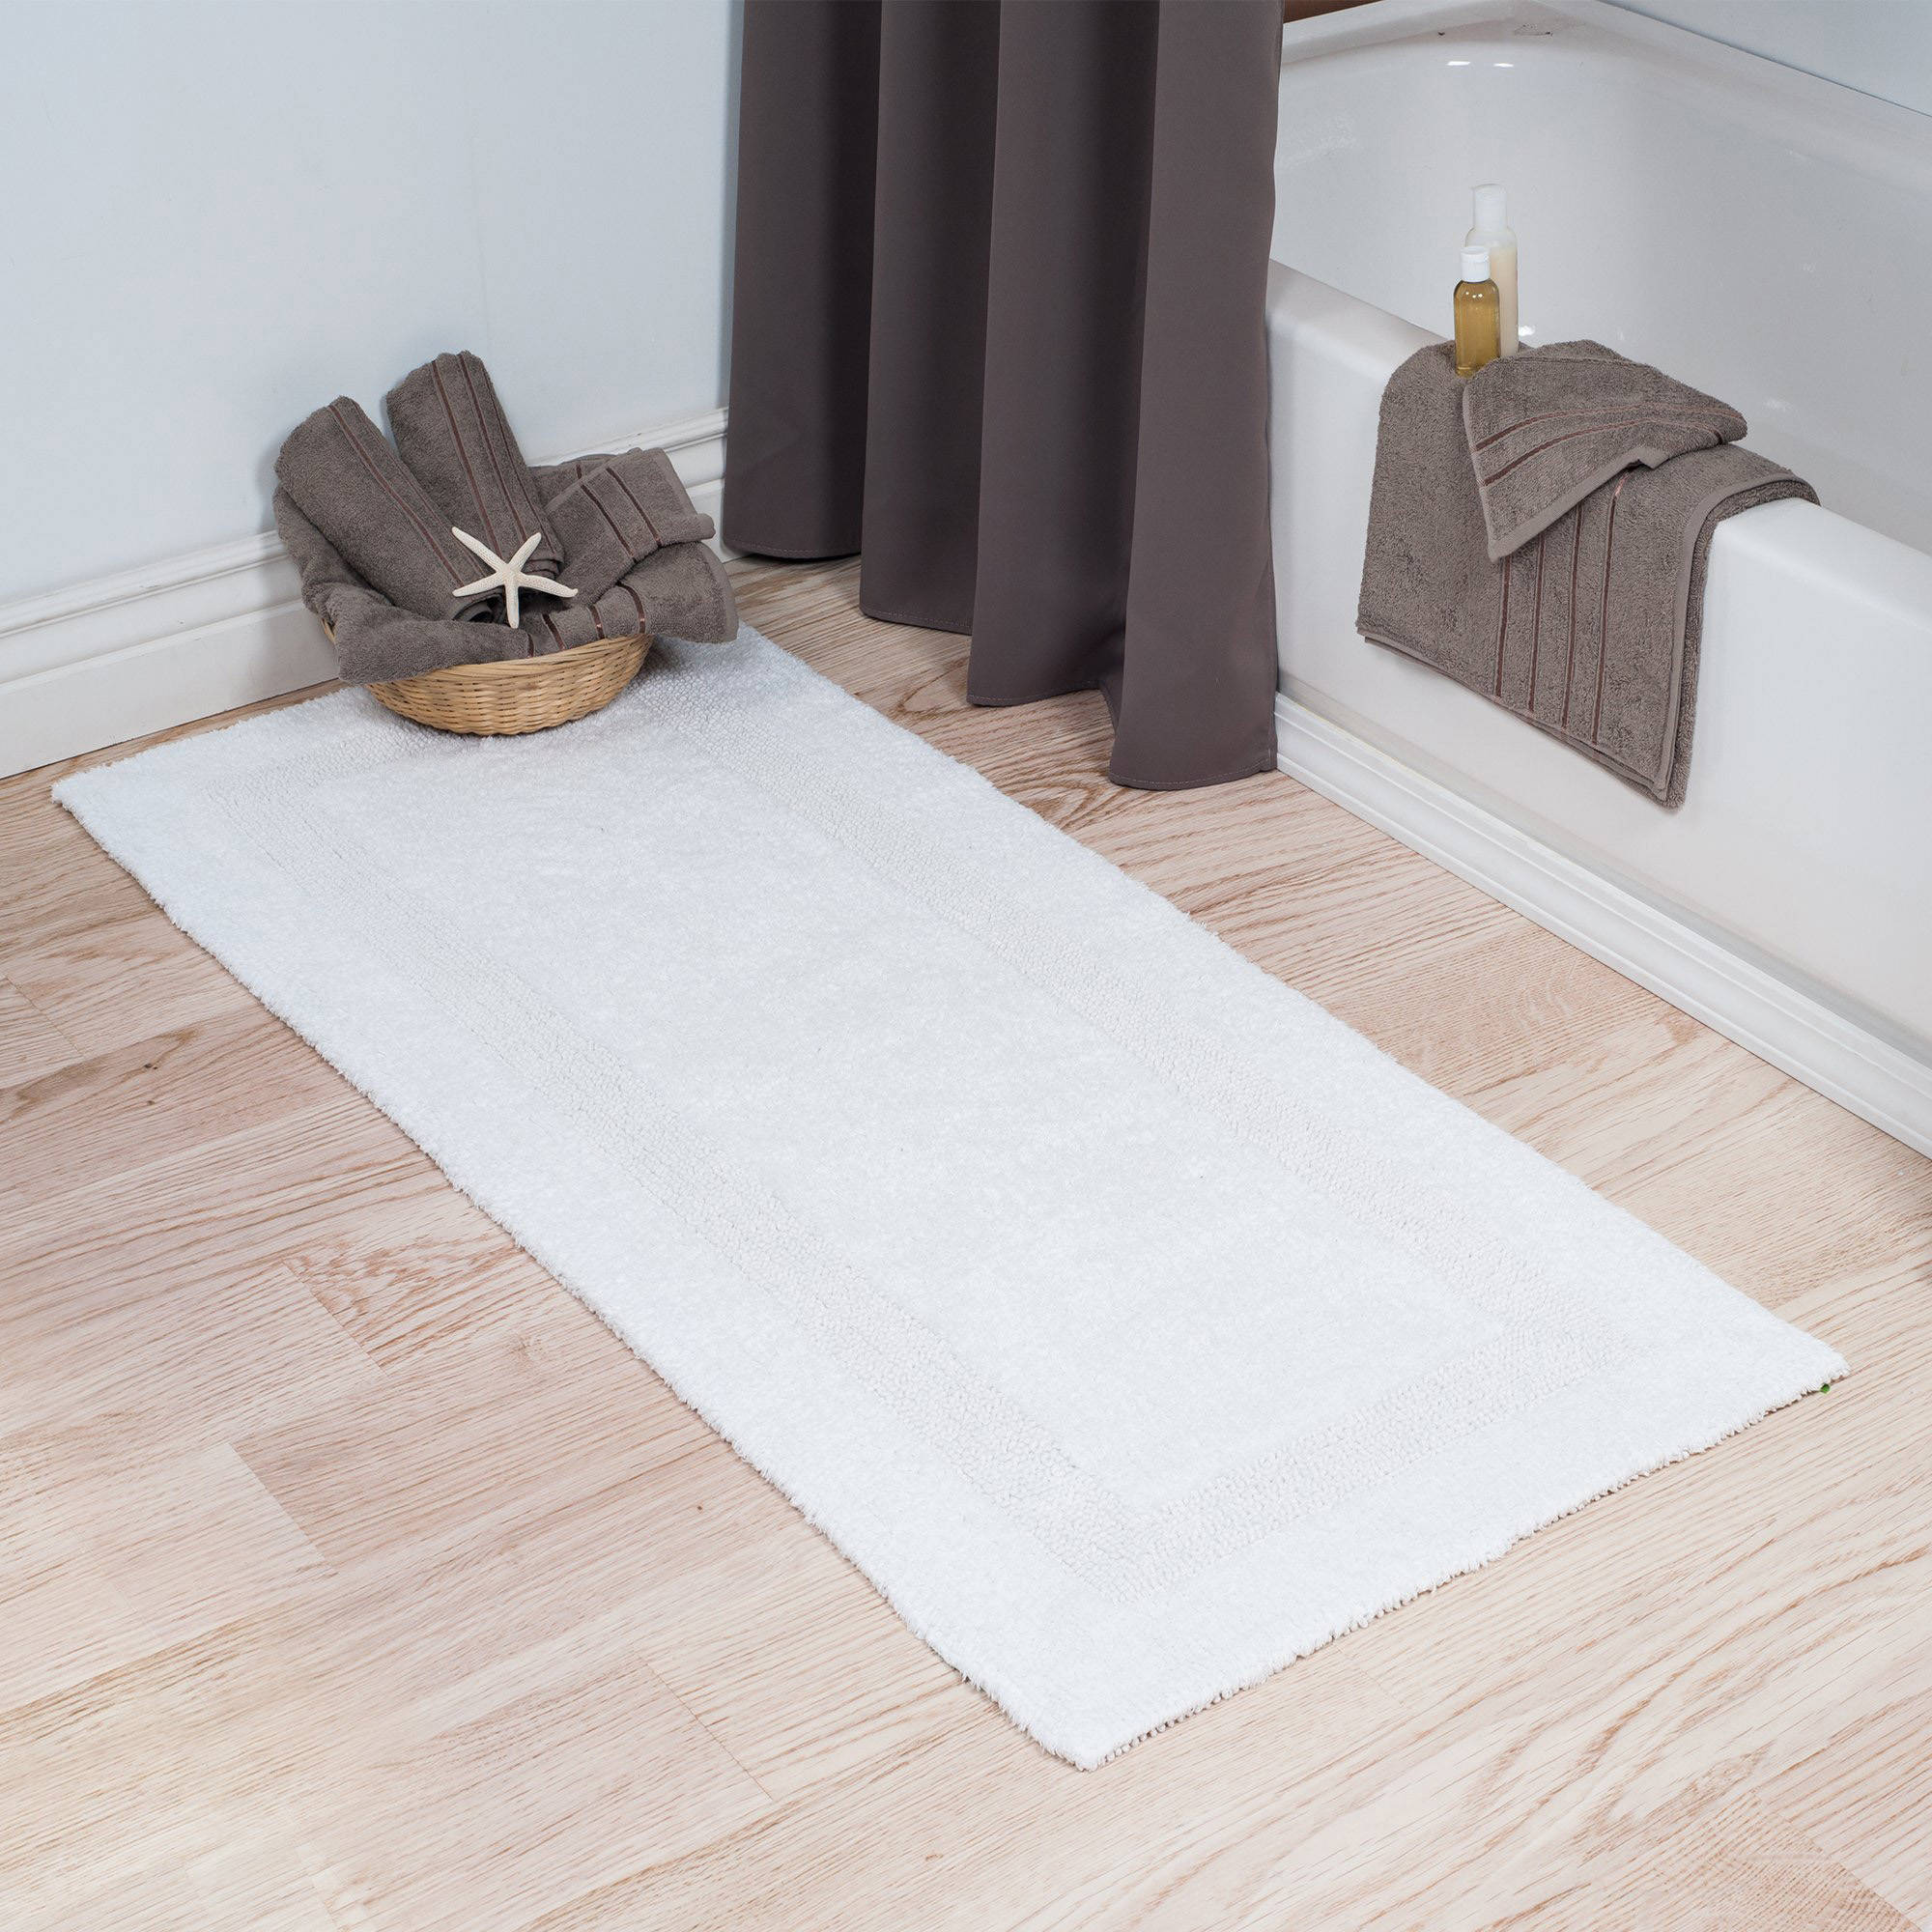 New  Home Silver 2 Ft X 5 Ft Cotton Reversible Extra Long Bath Rug Runner